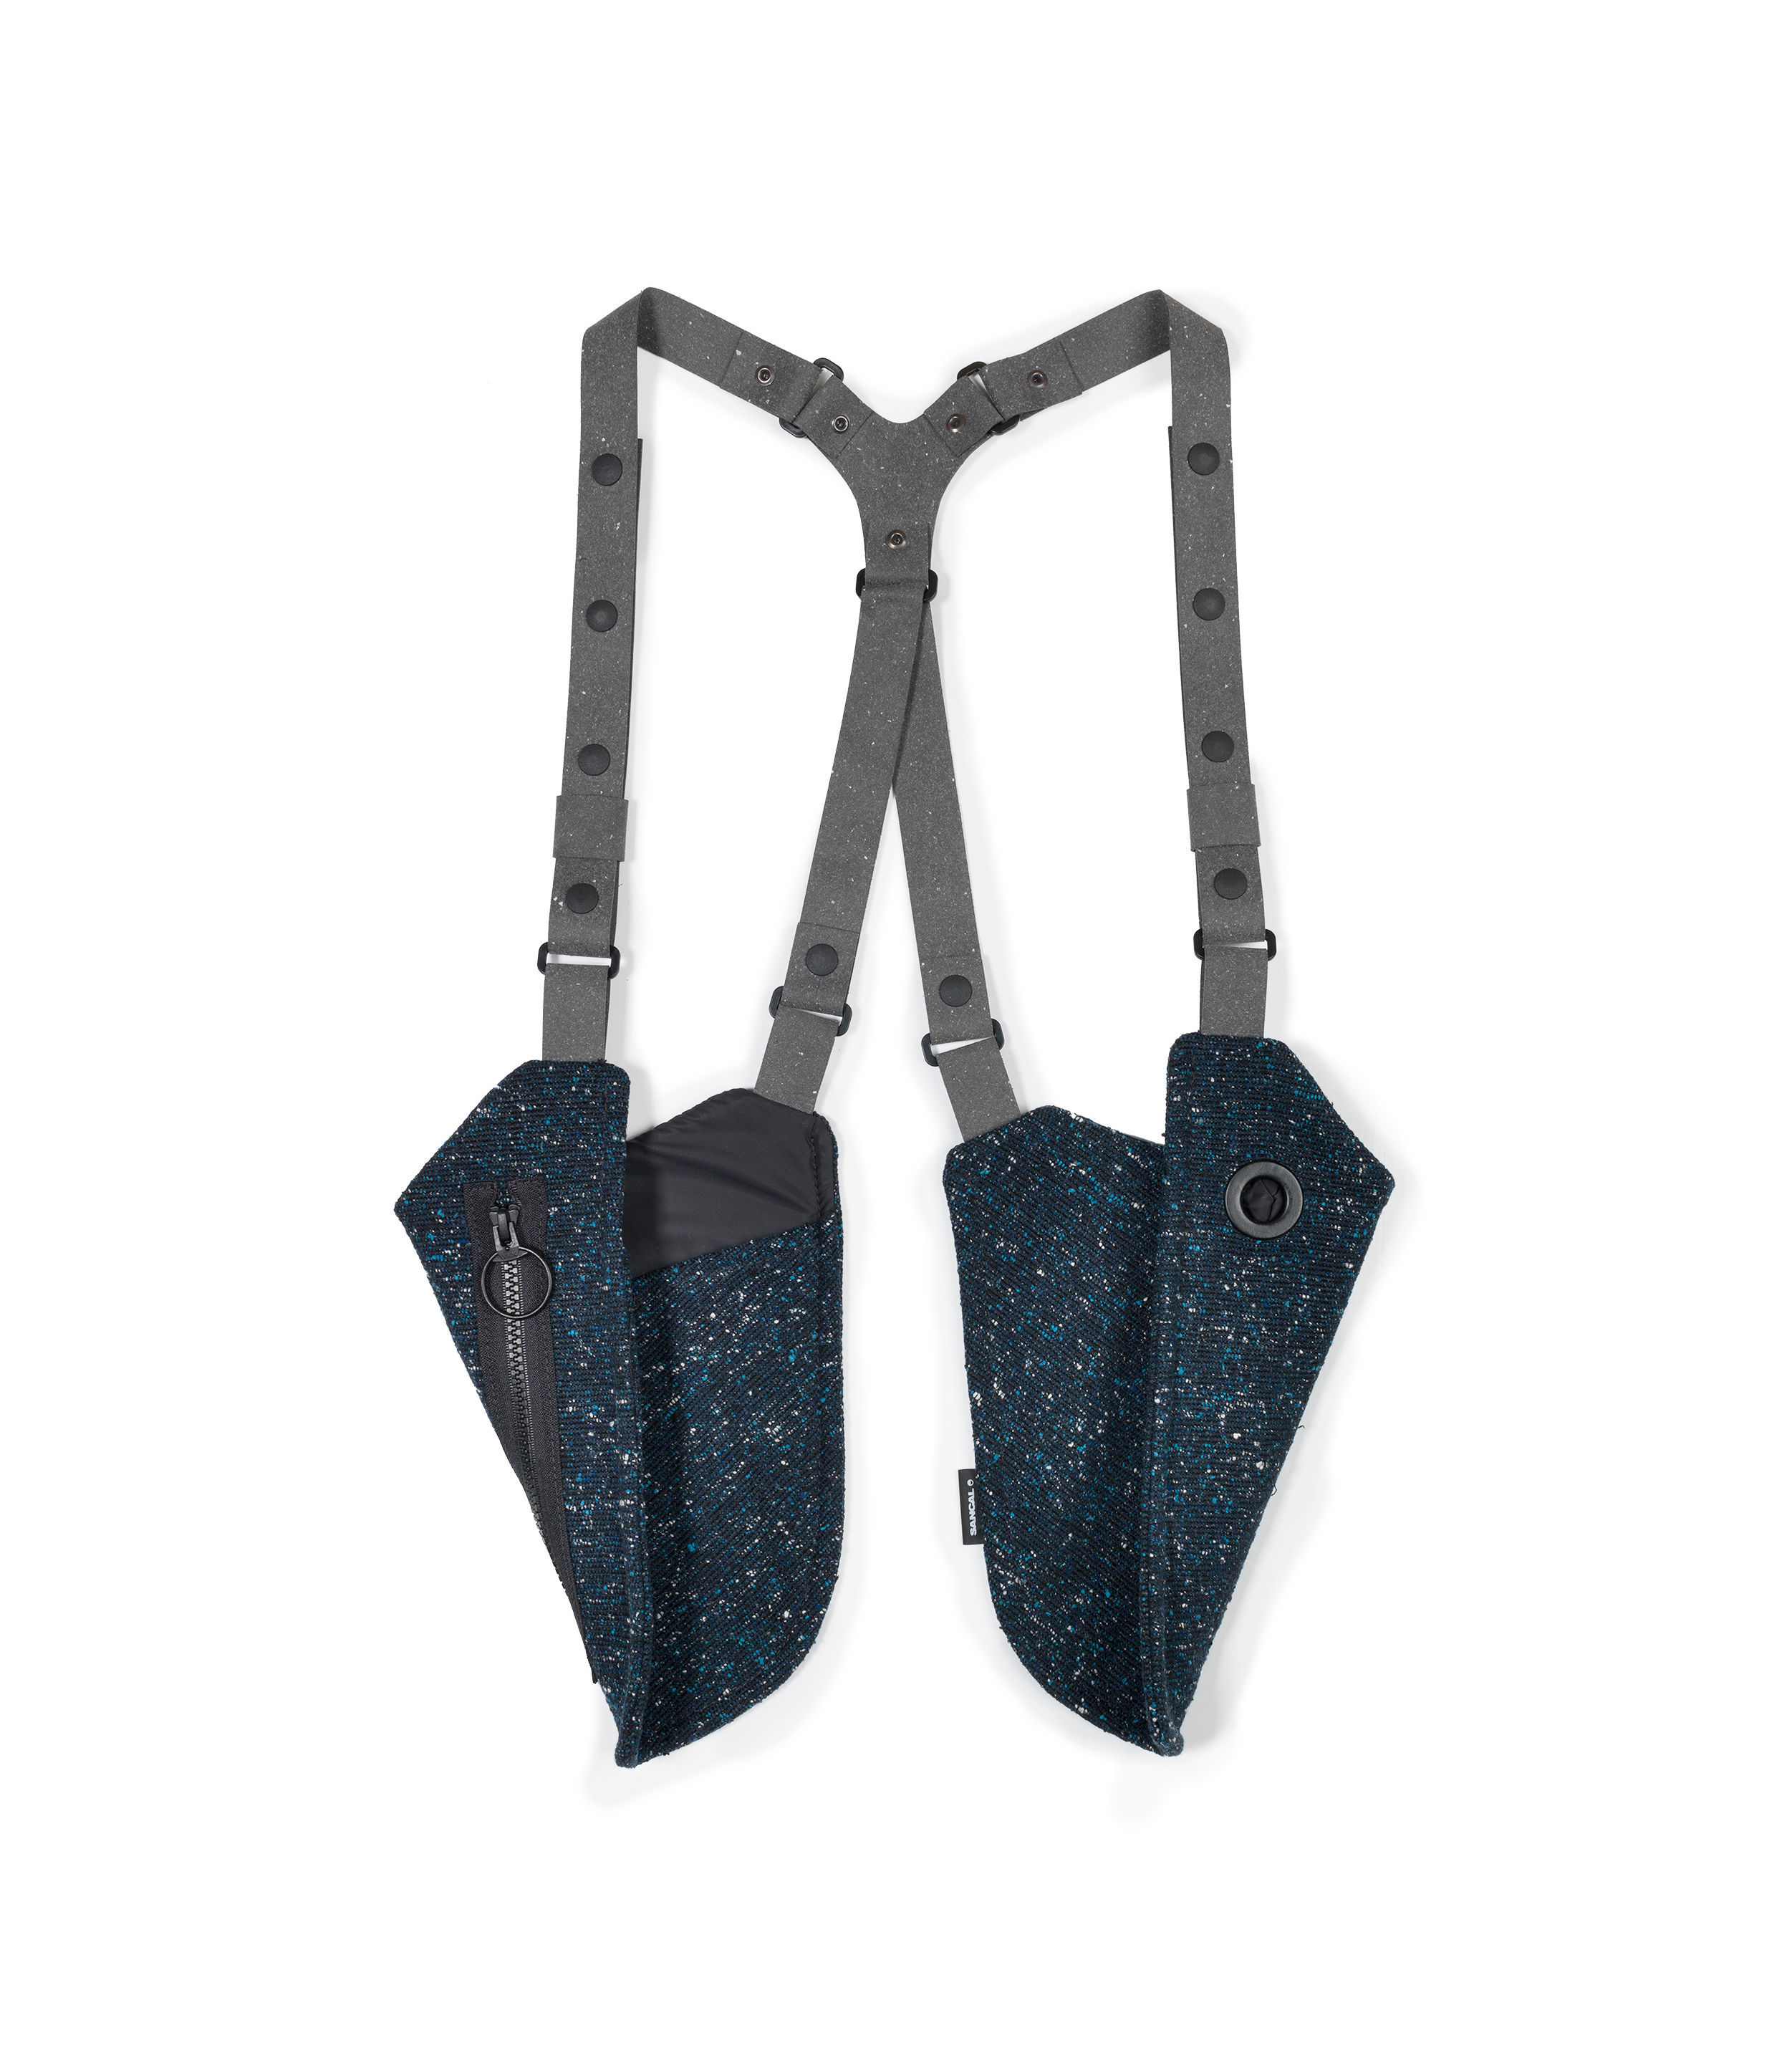 Accessories - Bags, Purses & Luggage - Sin Pistols Bag with strap - / 2 pockets by Sancal - Navy blue - Polyester, Recycled leather